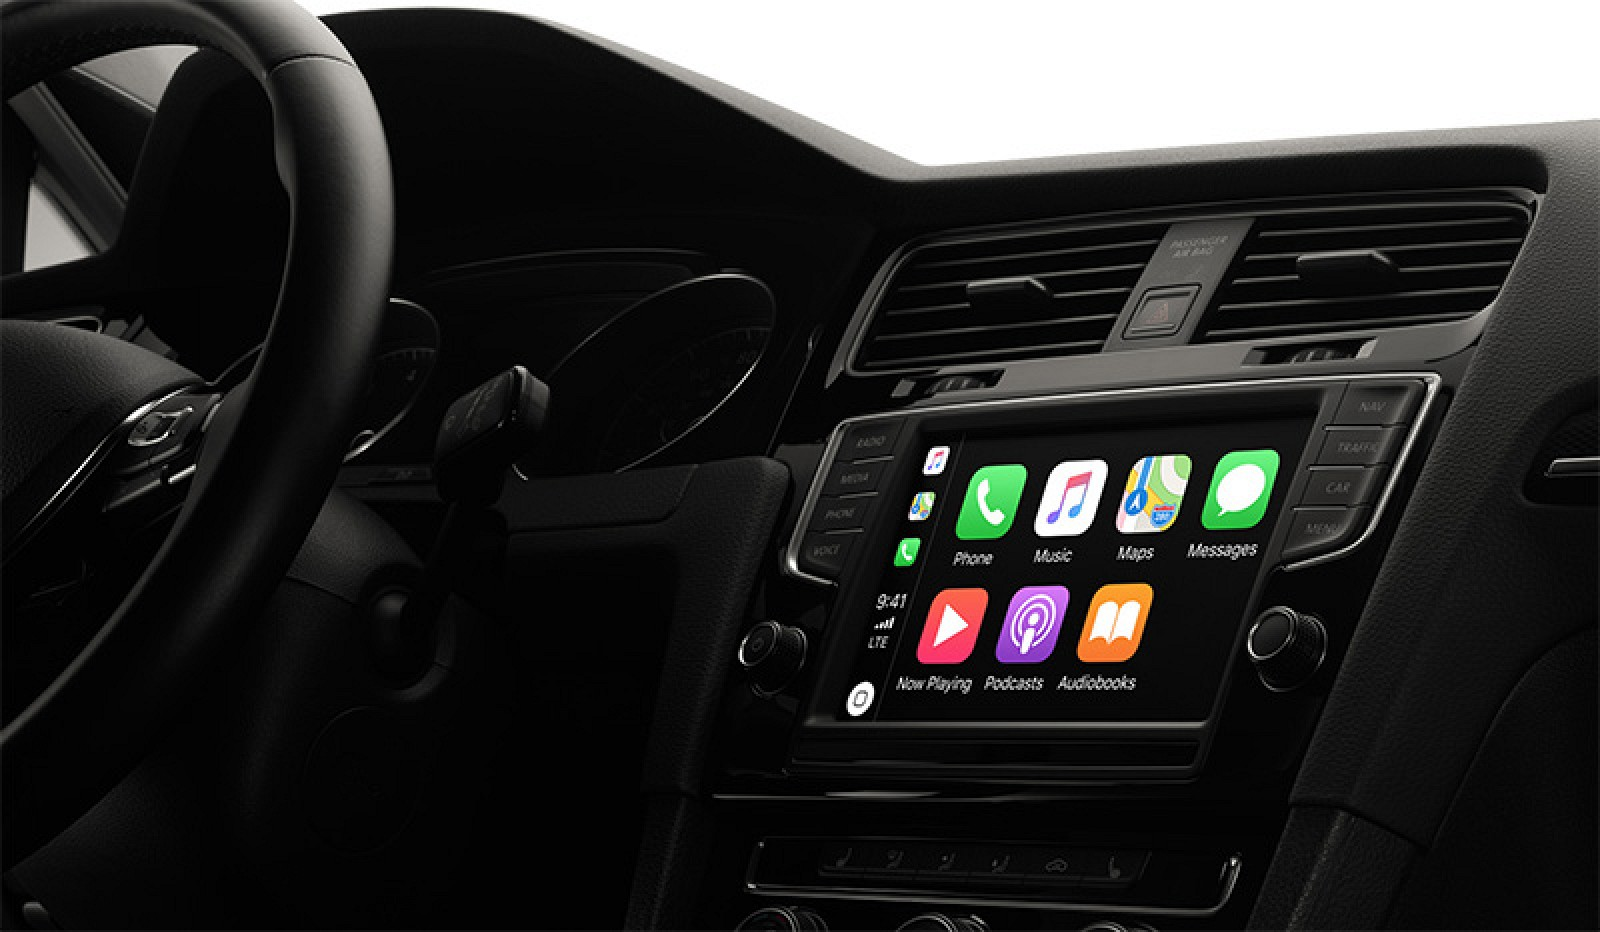 Toyota Offering Retrofit CarPlay Upgrades for 2018 Camry and Sienna